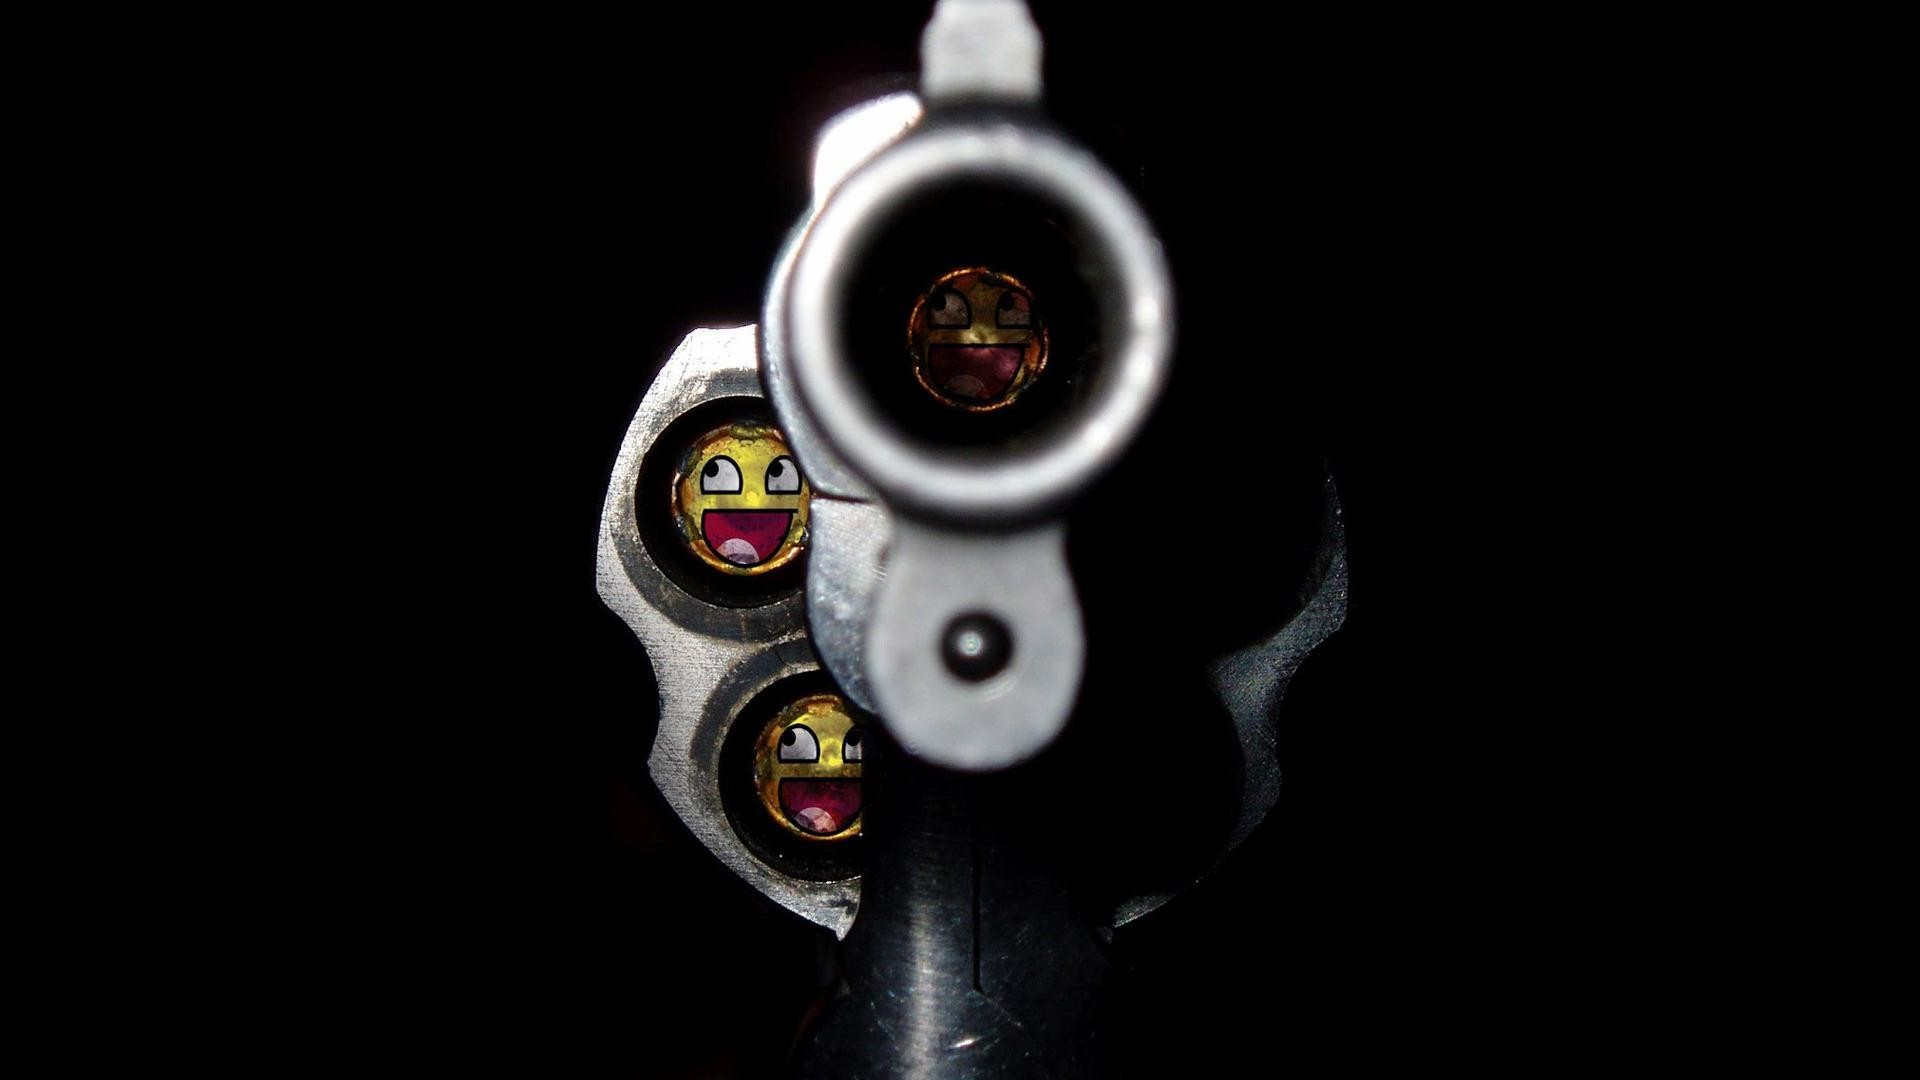 The muzzle of a revolver wallpapers and images – wallpapers .